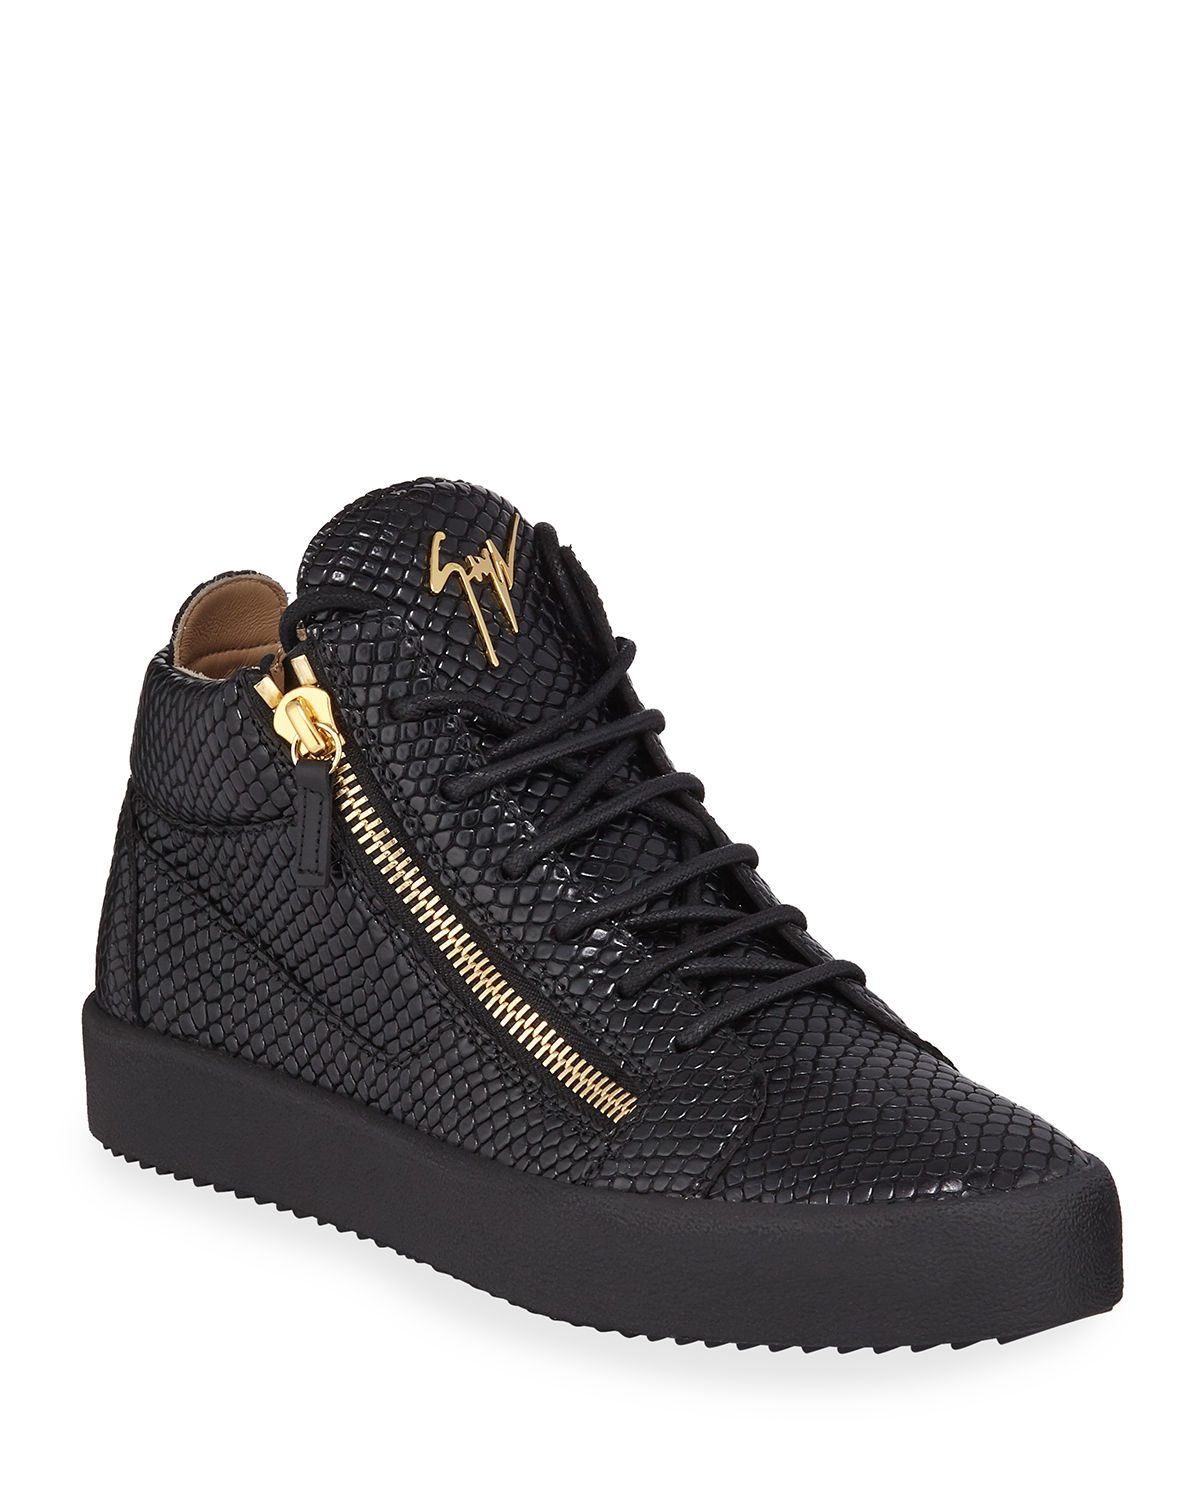 giuseppe zanotti men 39 s embossed leather mid top sneakers. Black Bedroom Furniture Sets. Home Design Ideas